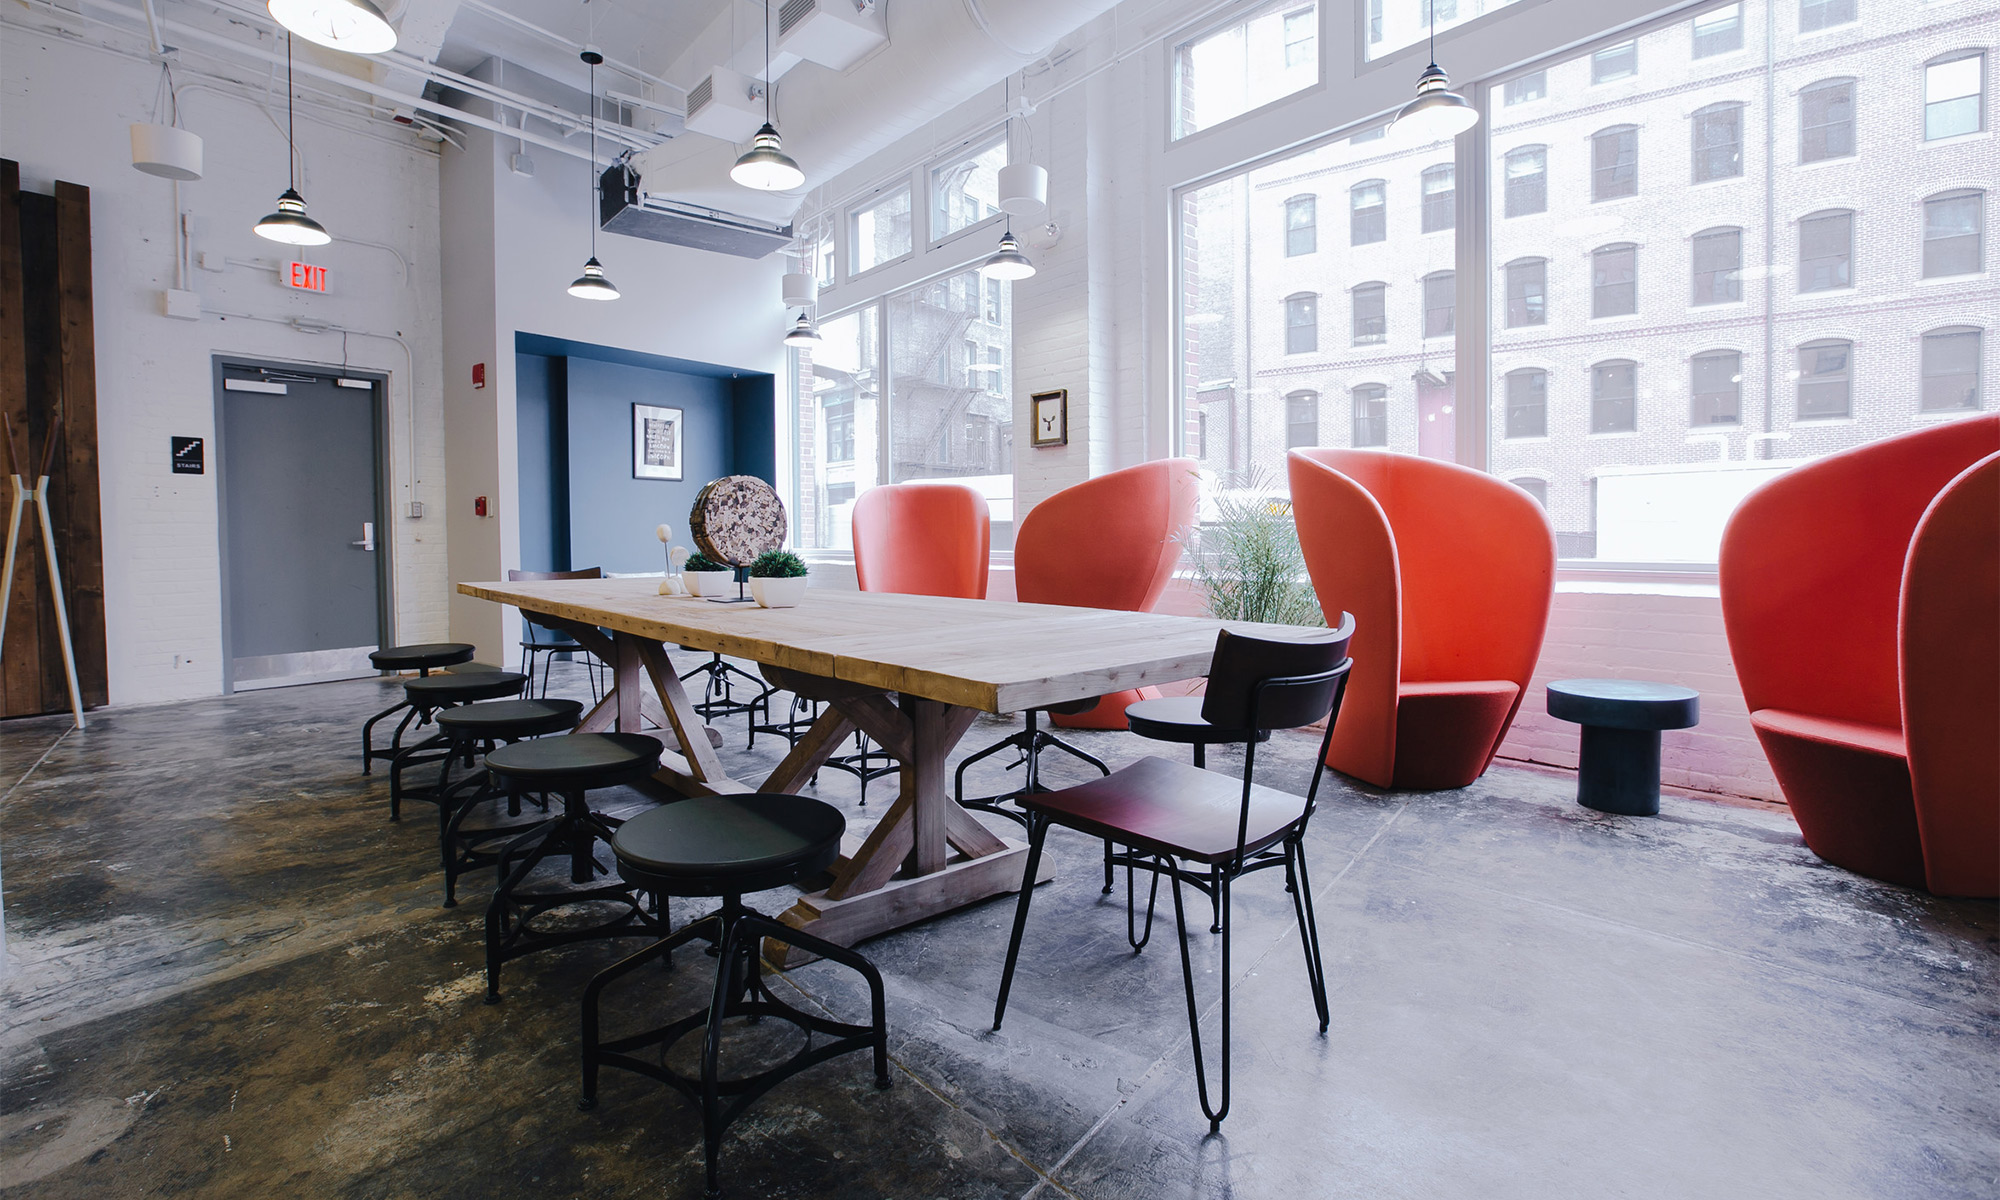 Develop wework like office sharing app-airbnb for ofc